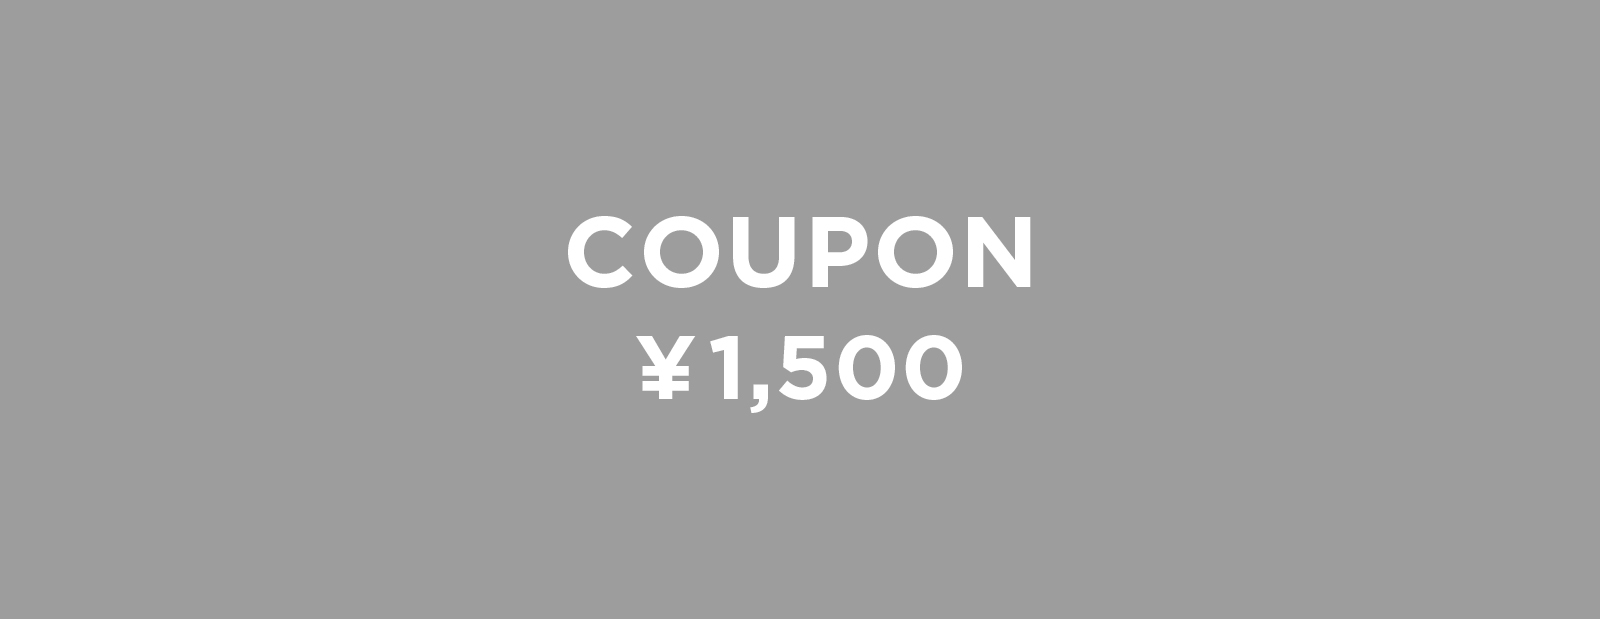 Spring Special COUPON